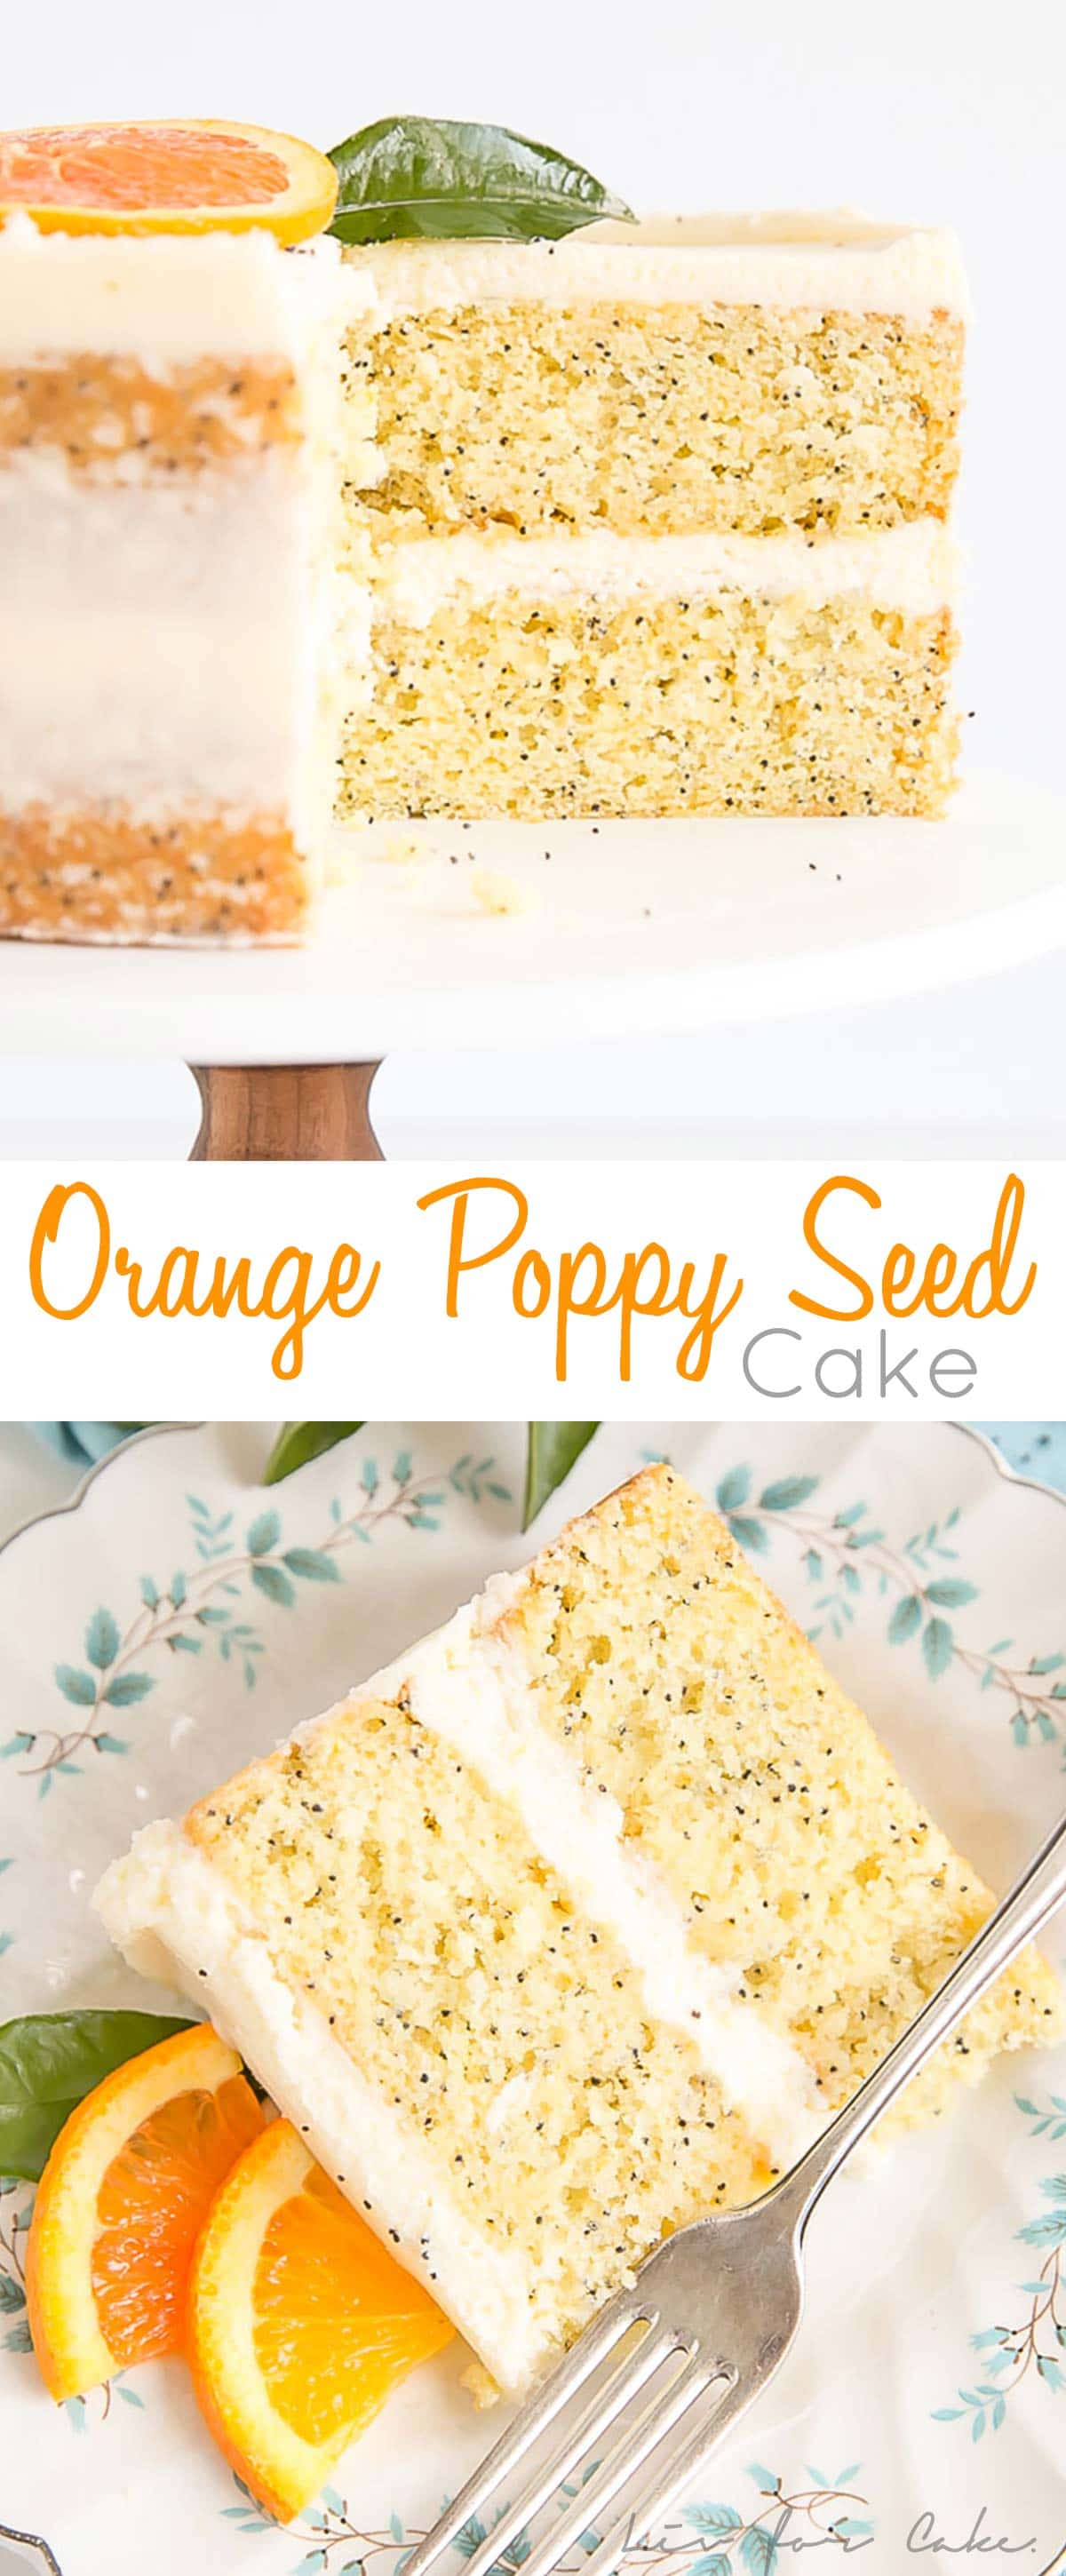 Tender Orange Poppy Seed Cake layers with a delicious mascarpone frosting.